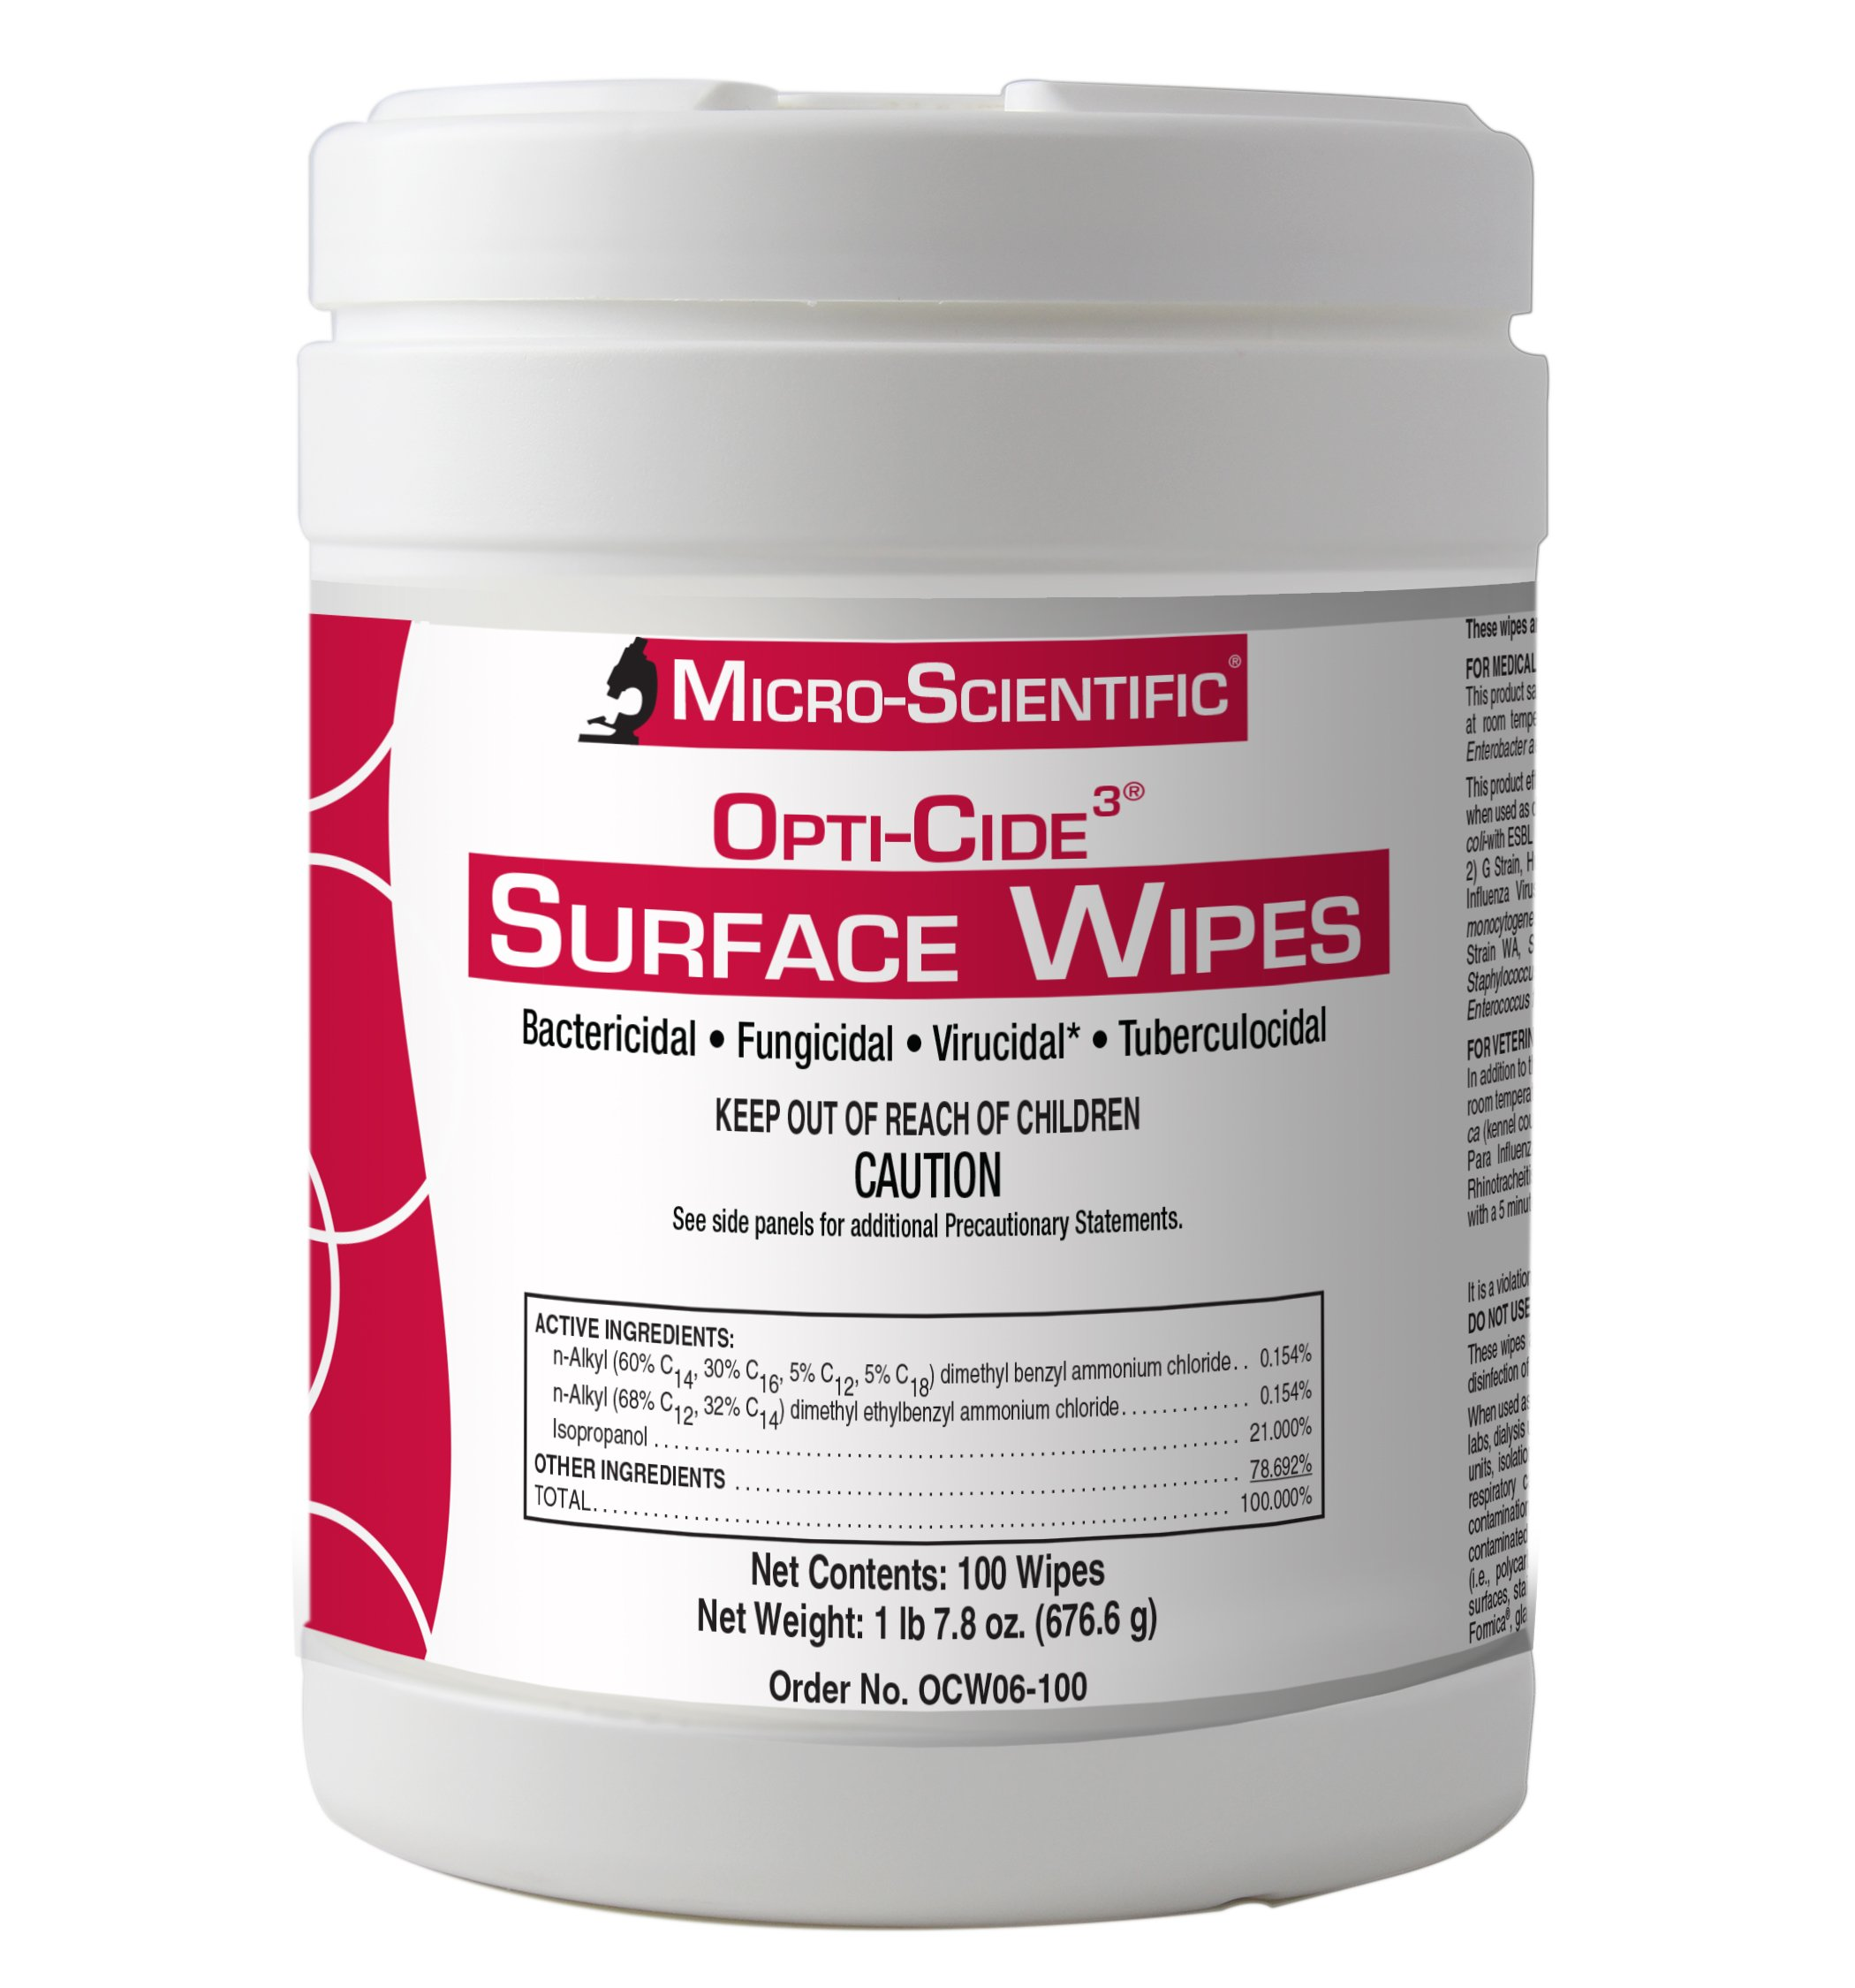 Micro-Scientific Opti-Cide3 Healthcare Grade Disinfectant Cleaner Surface Wipes